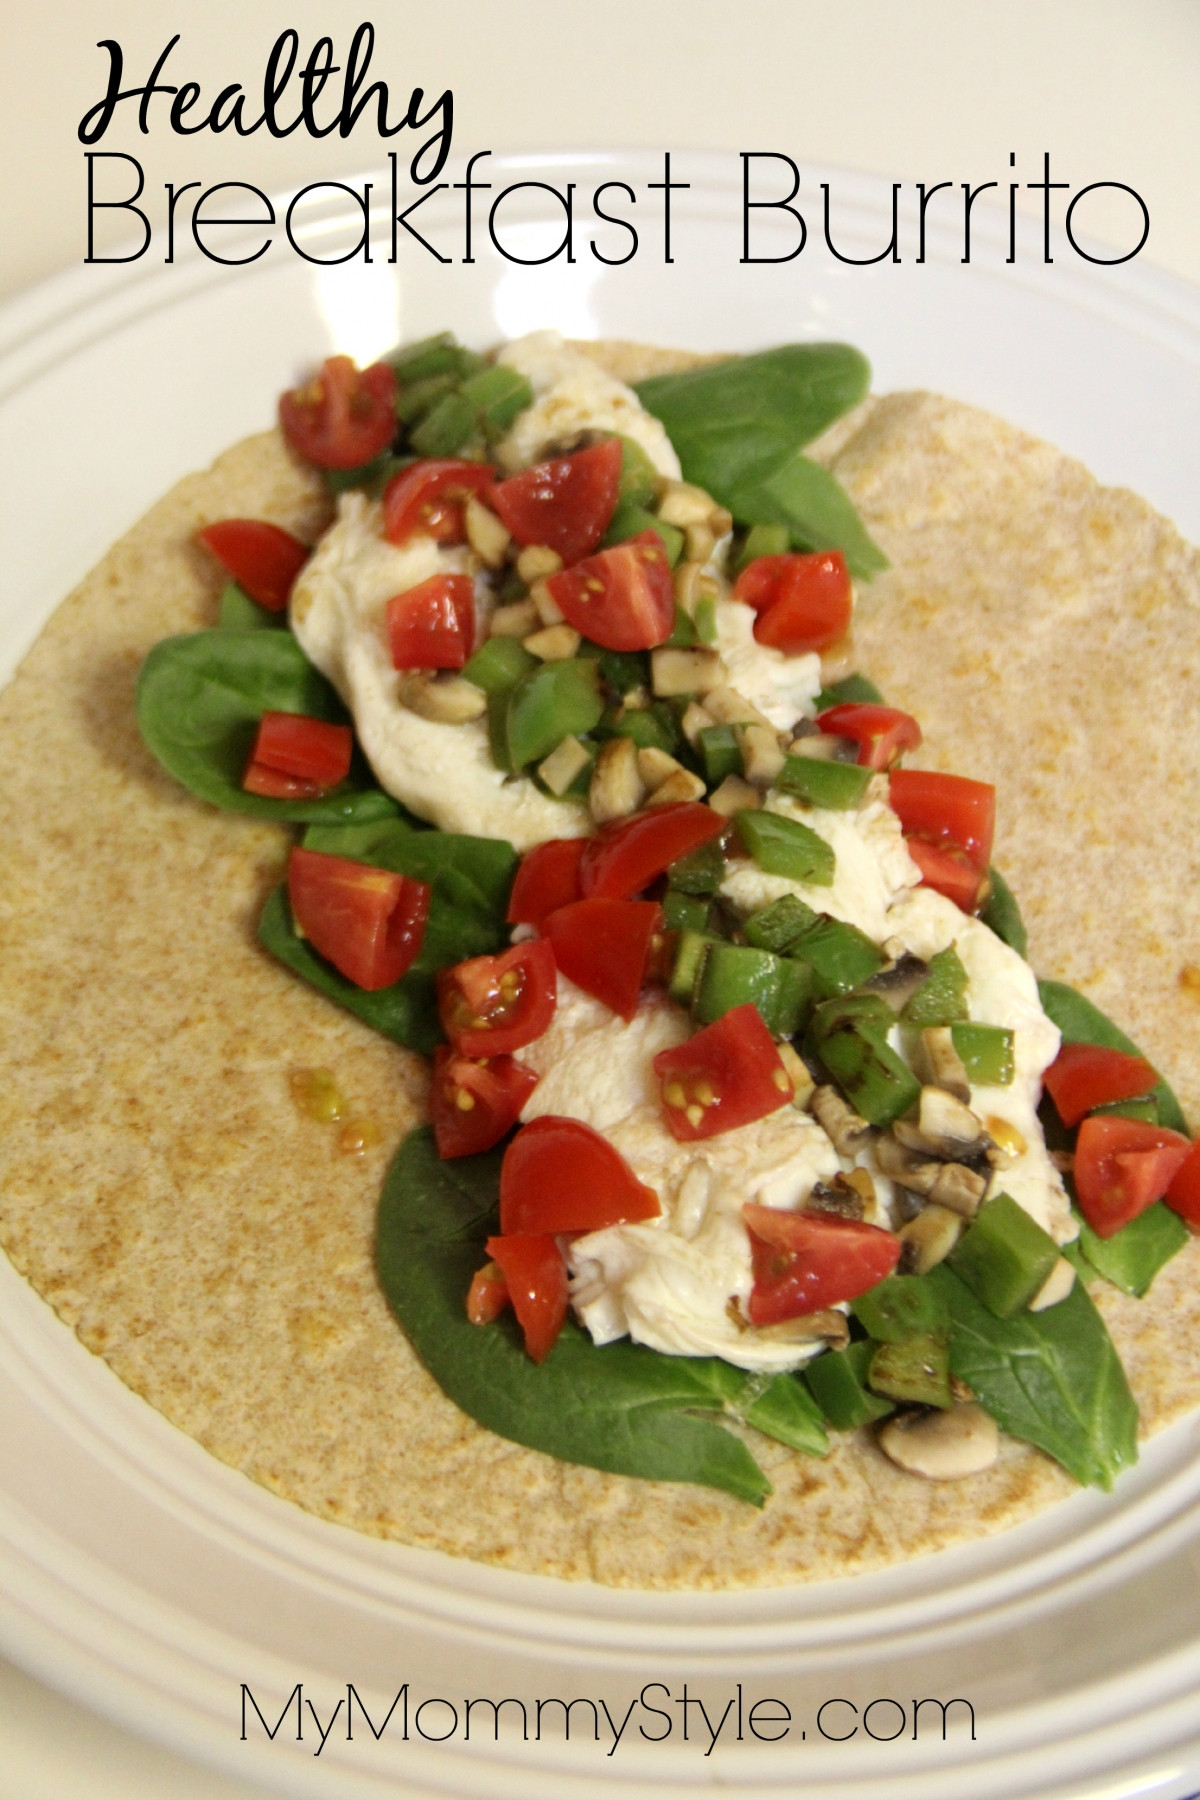 Healthy Breakfast Burrito  Healthy Breakfast Burrito My Mommy Style